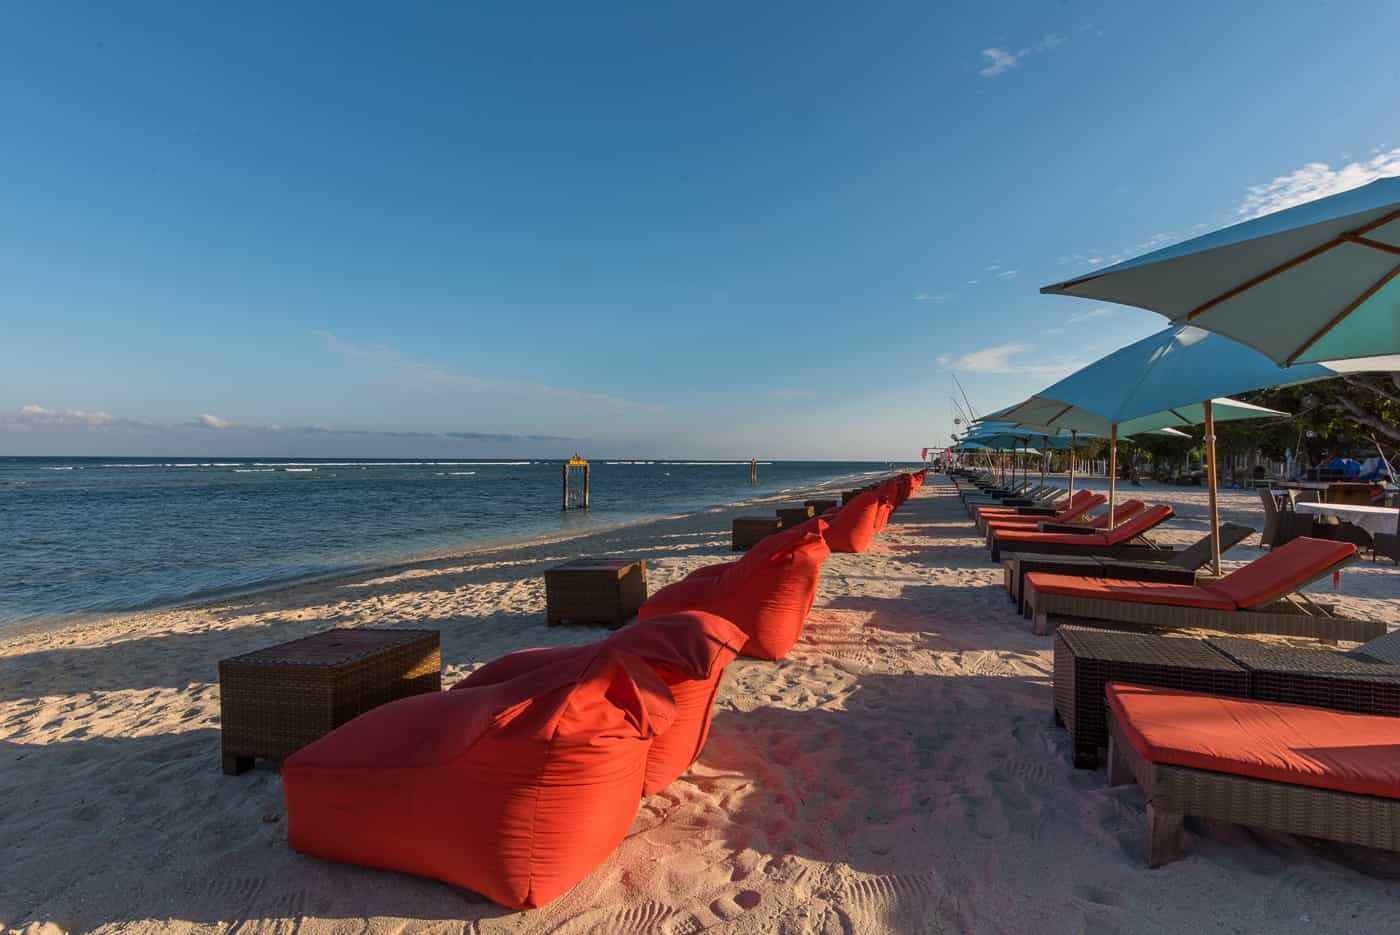 Beachfront chairs for sunset views at Hotel Ombak Sunset in Gili Trawangan Island of Lombok Indonesia